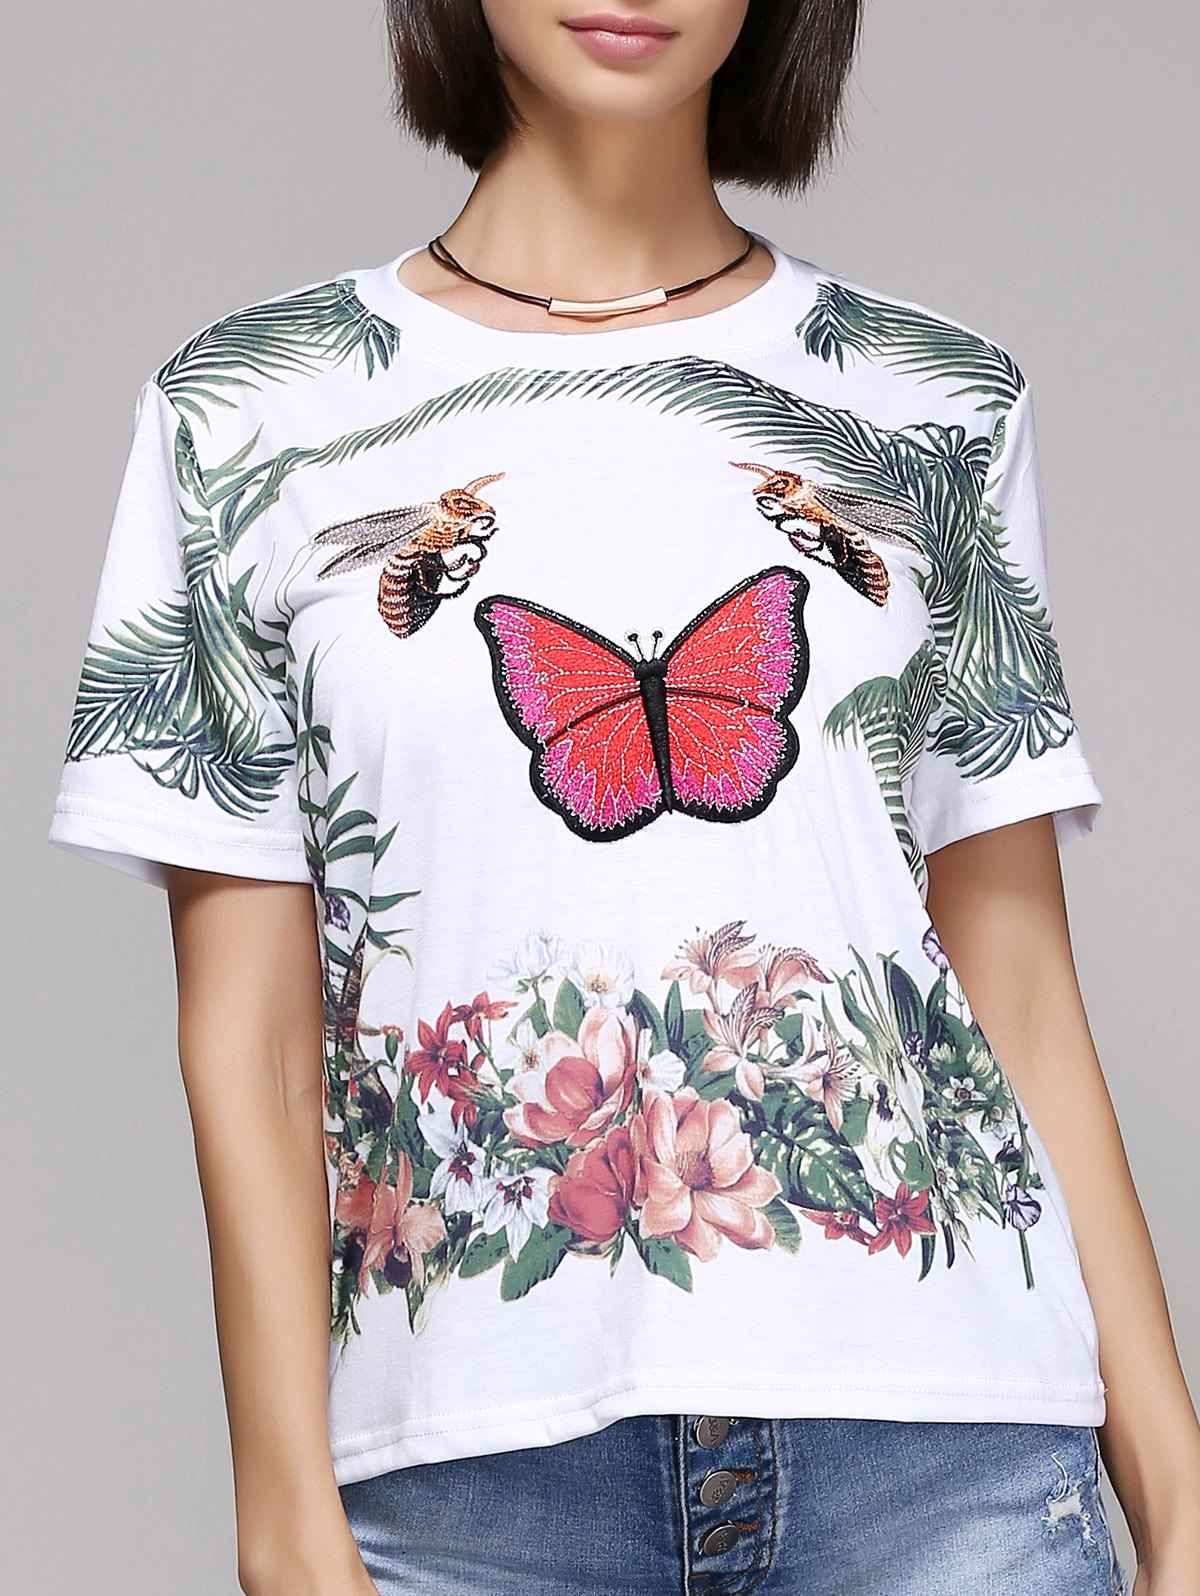 Stylish Butterfly Print Short Sleeve Round Neck T-Shirt For Women